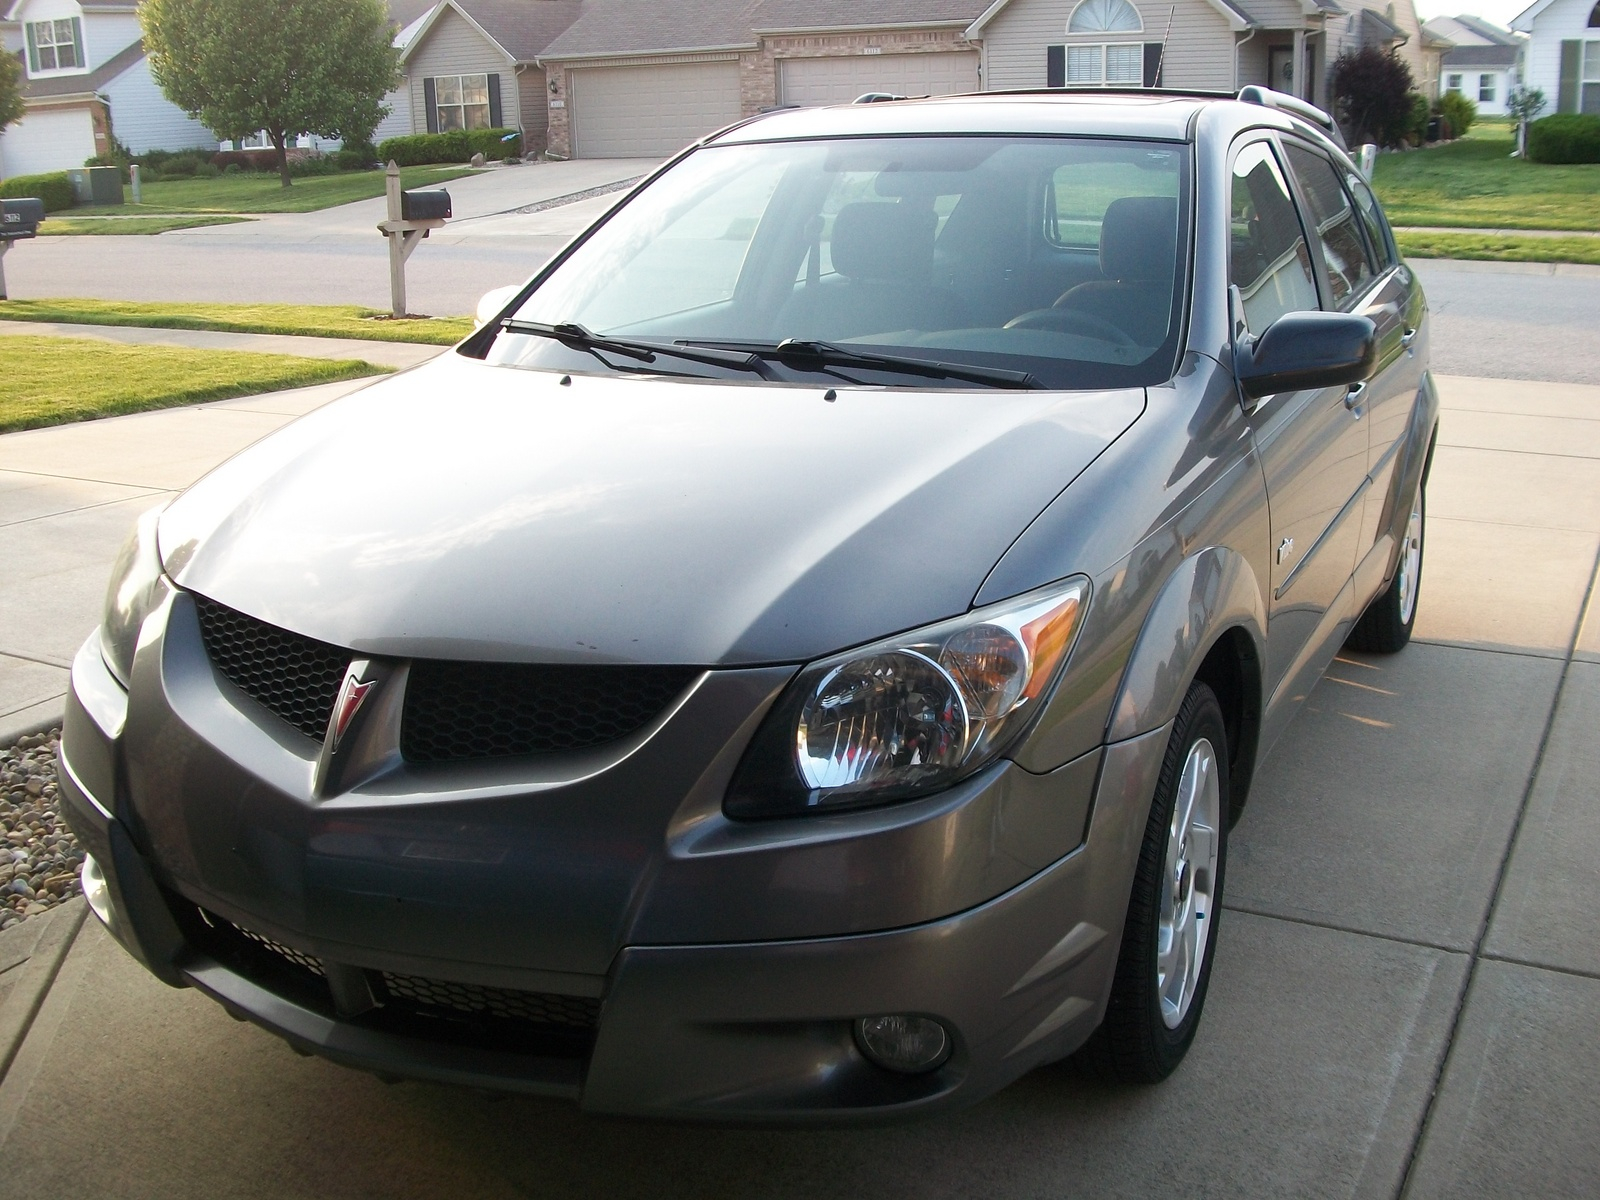 2003 pontiac vibe exterior pictures cargurus. Black Bedroom Furniture Sets. Home Design Ideas